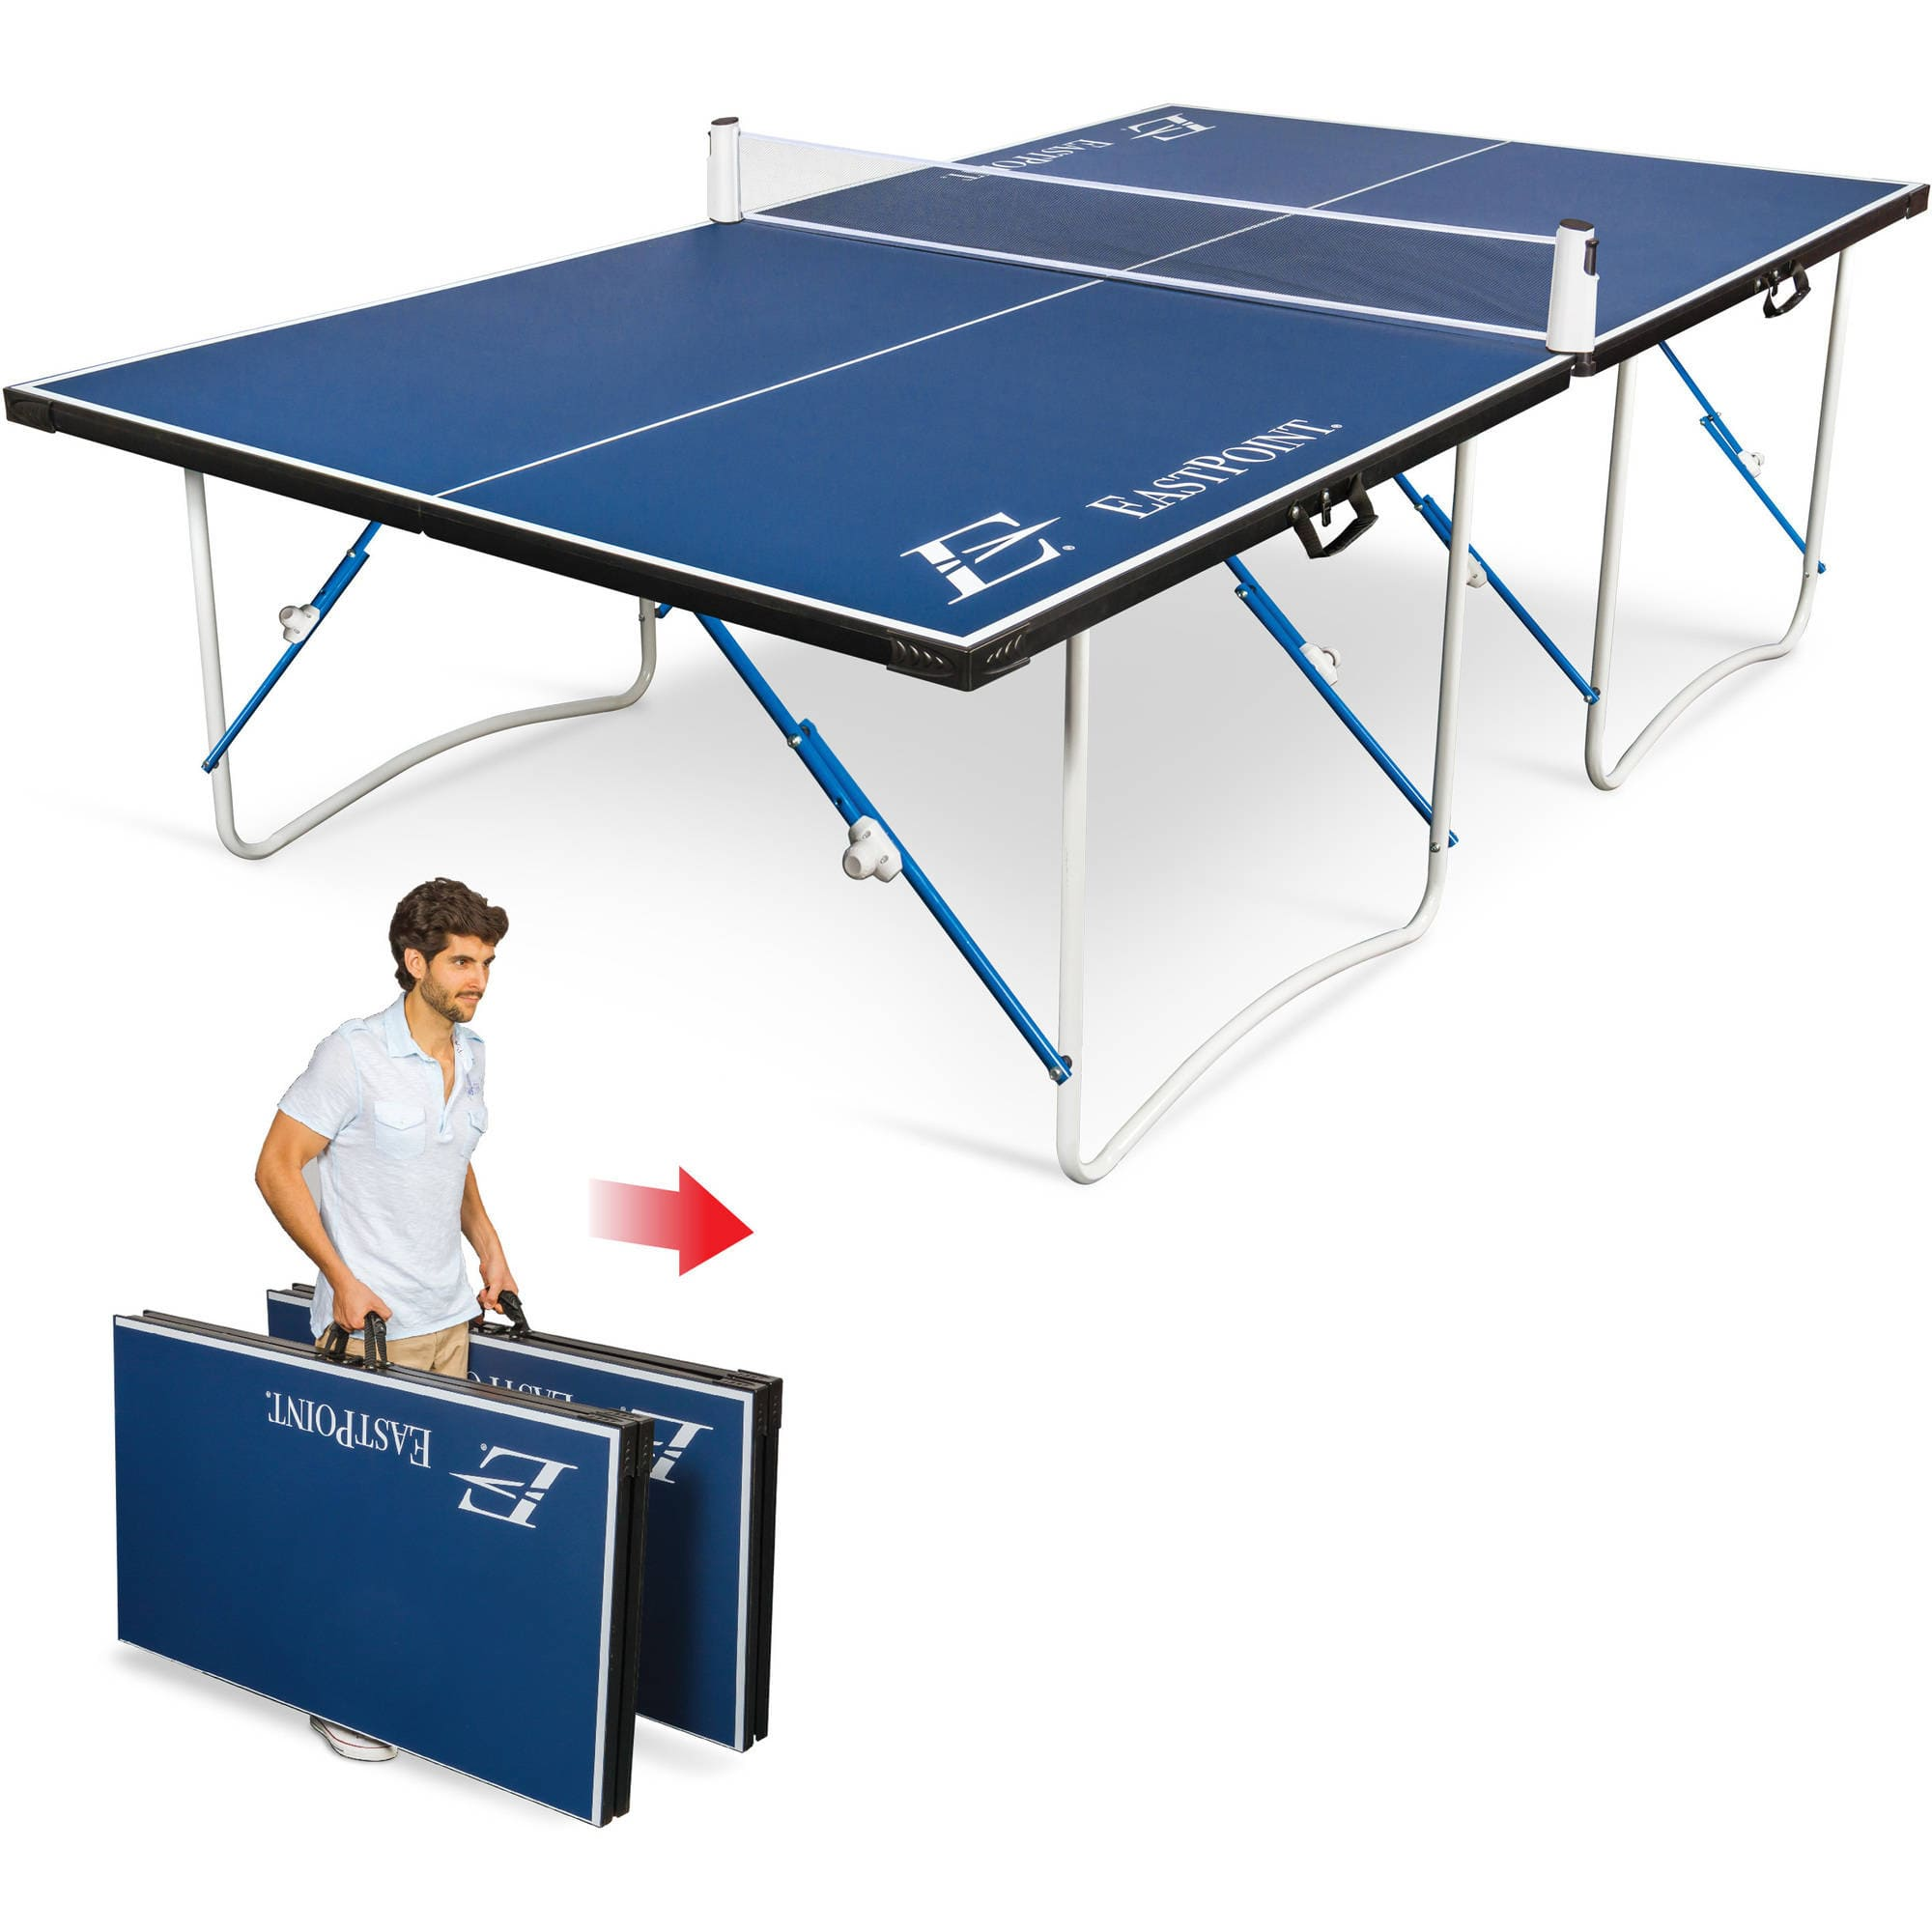 EastPoint Sports Easy Setup Fold & Store Table Tennis Table -  $48.13 -  free store pickup